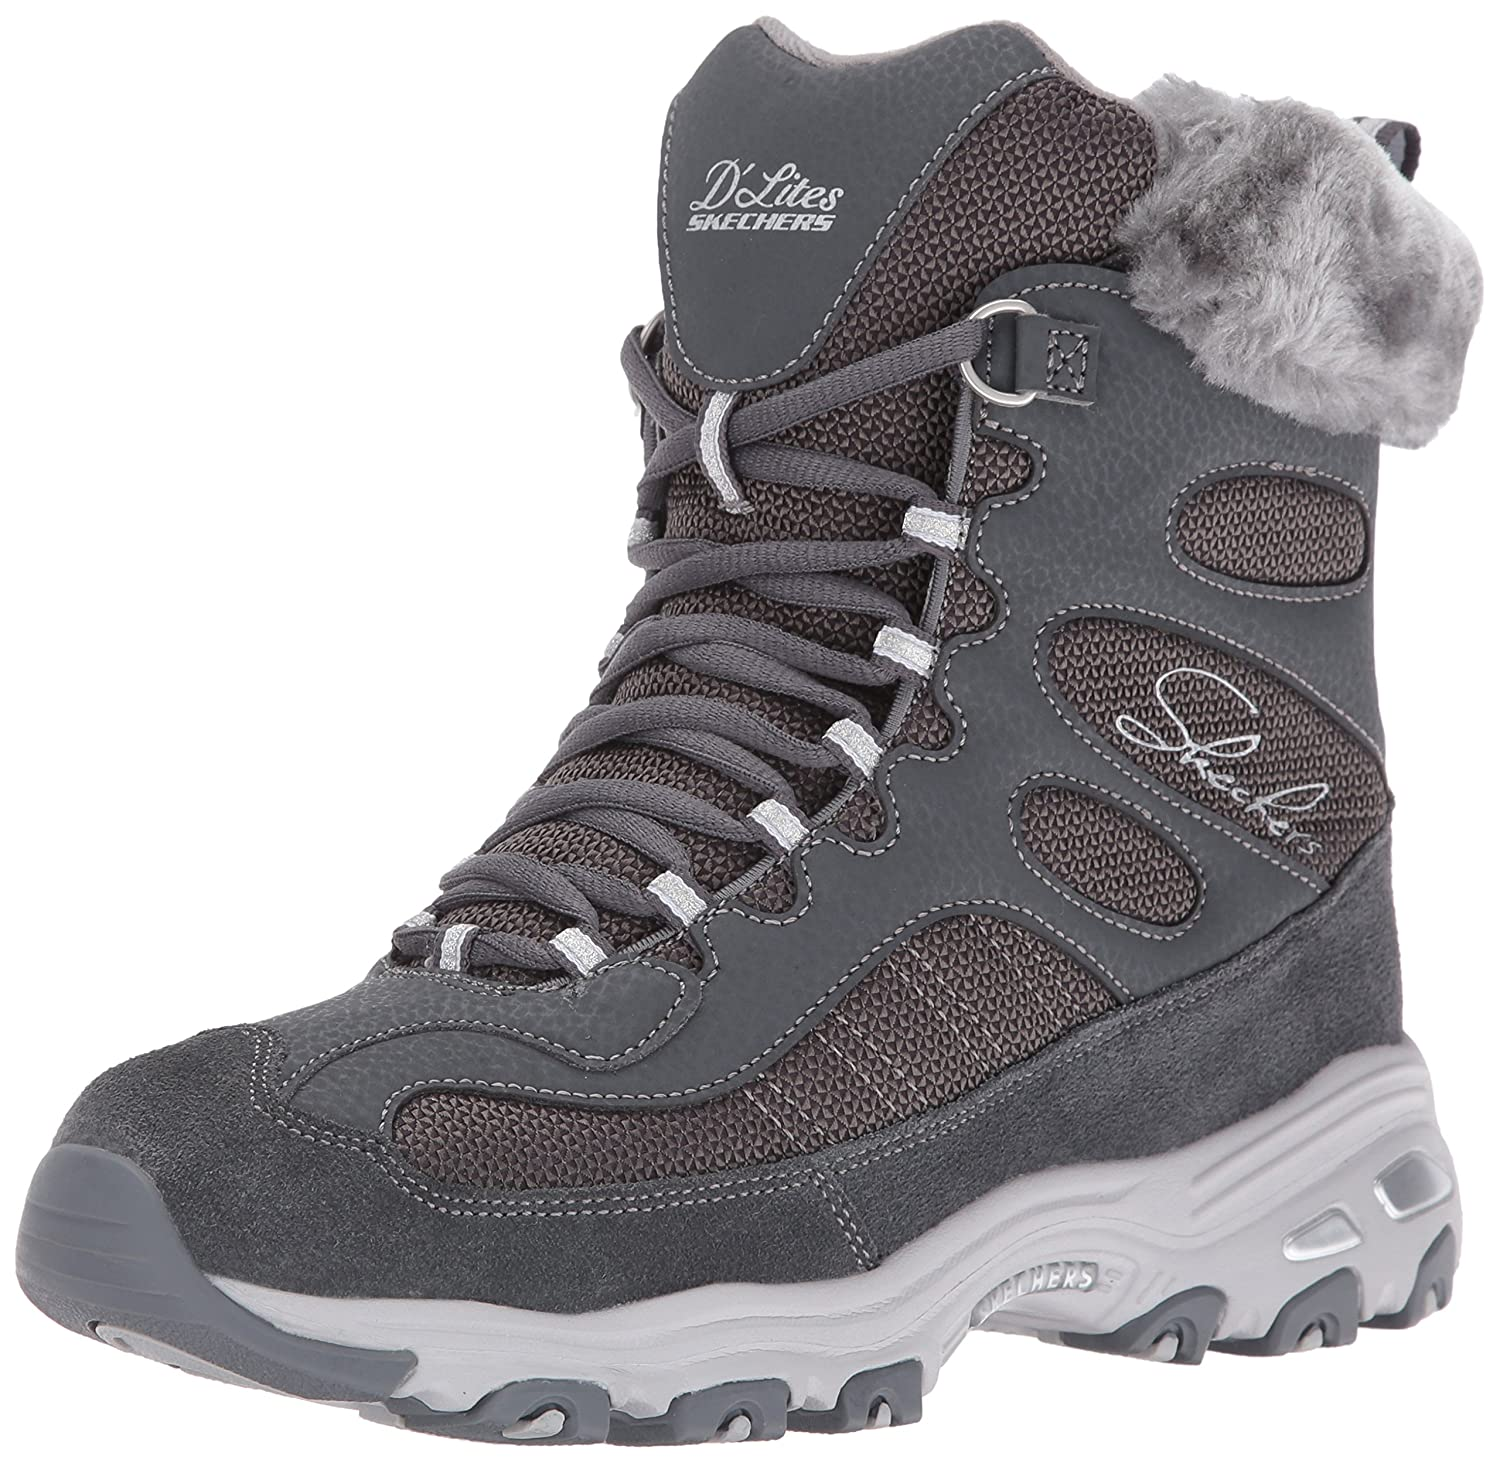 Skechers Women's D'Lites Chalet Faux Fur Collar Winter Boot B01CJ8H37S 5 B(M) US|Charcoal